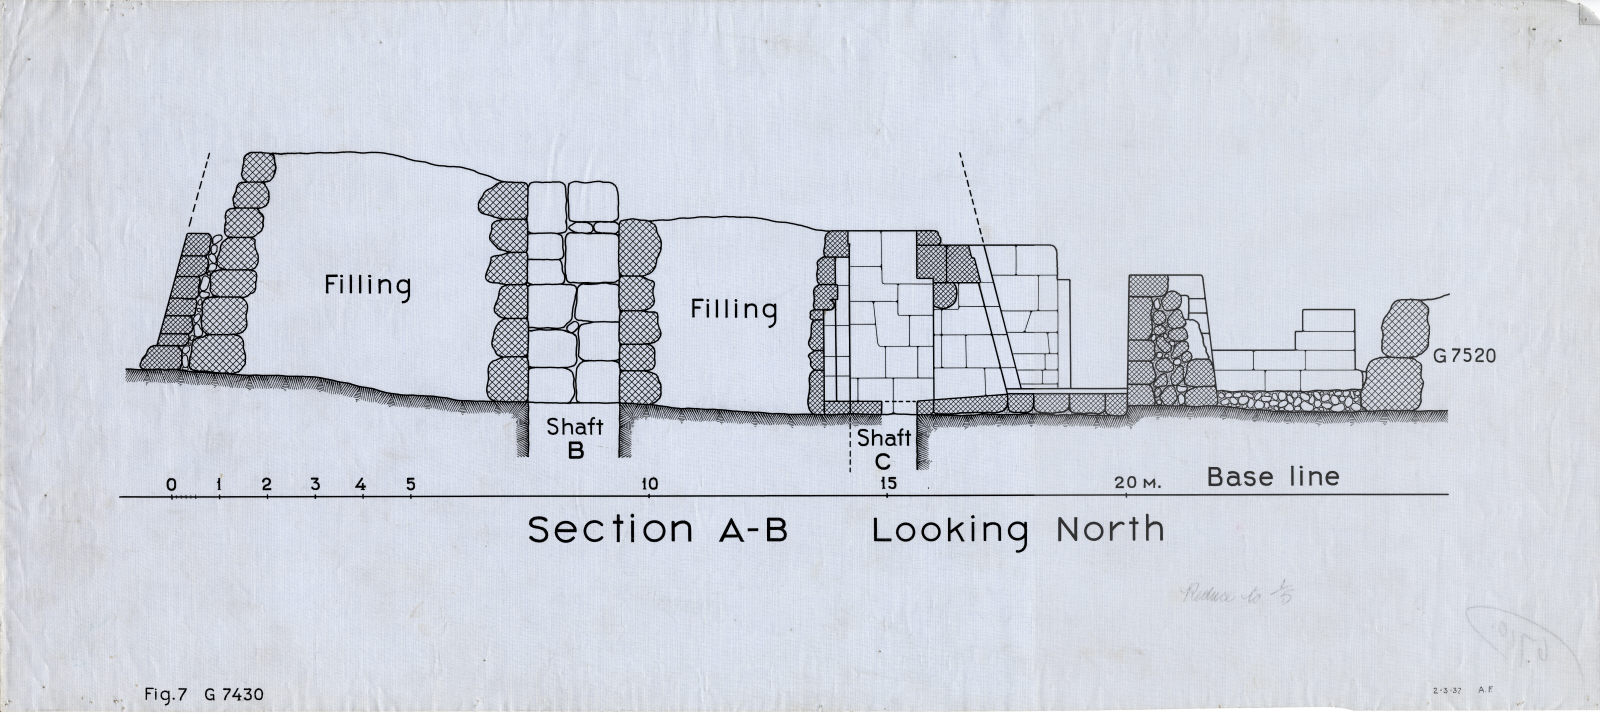 Maps and plans: G 7430, Shaft B and C, with position of G 7520